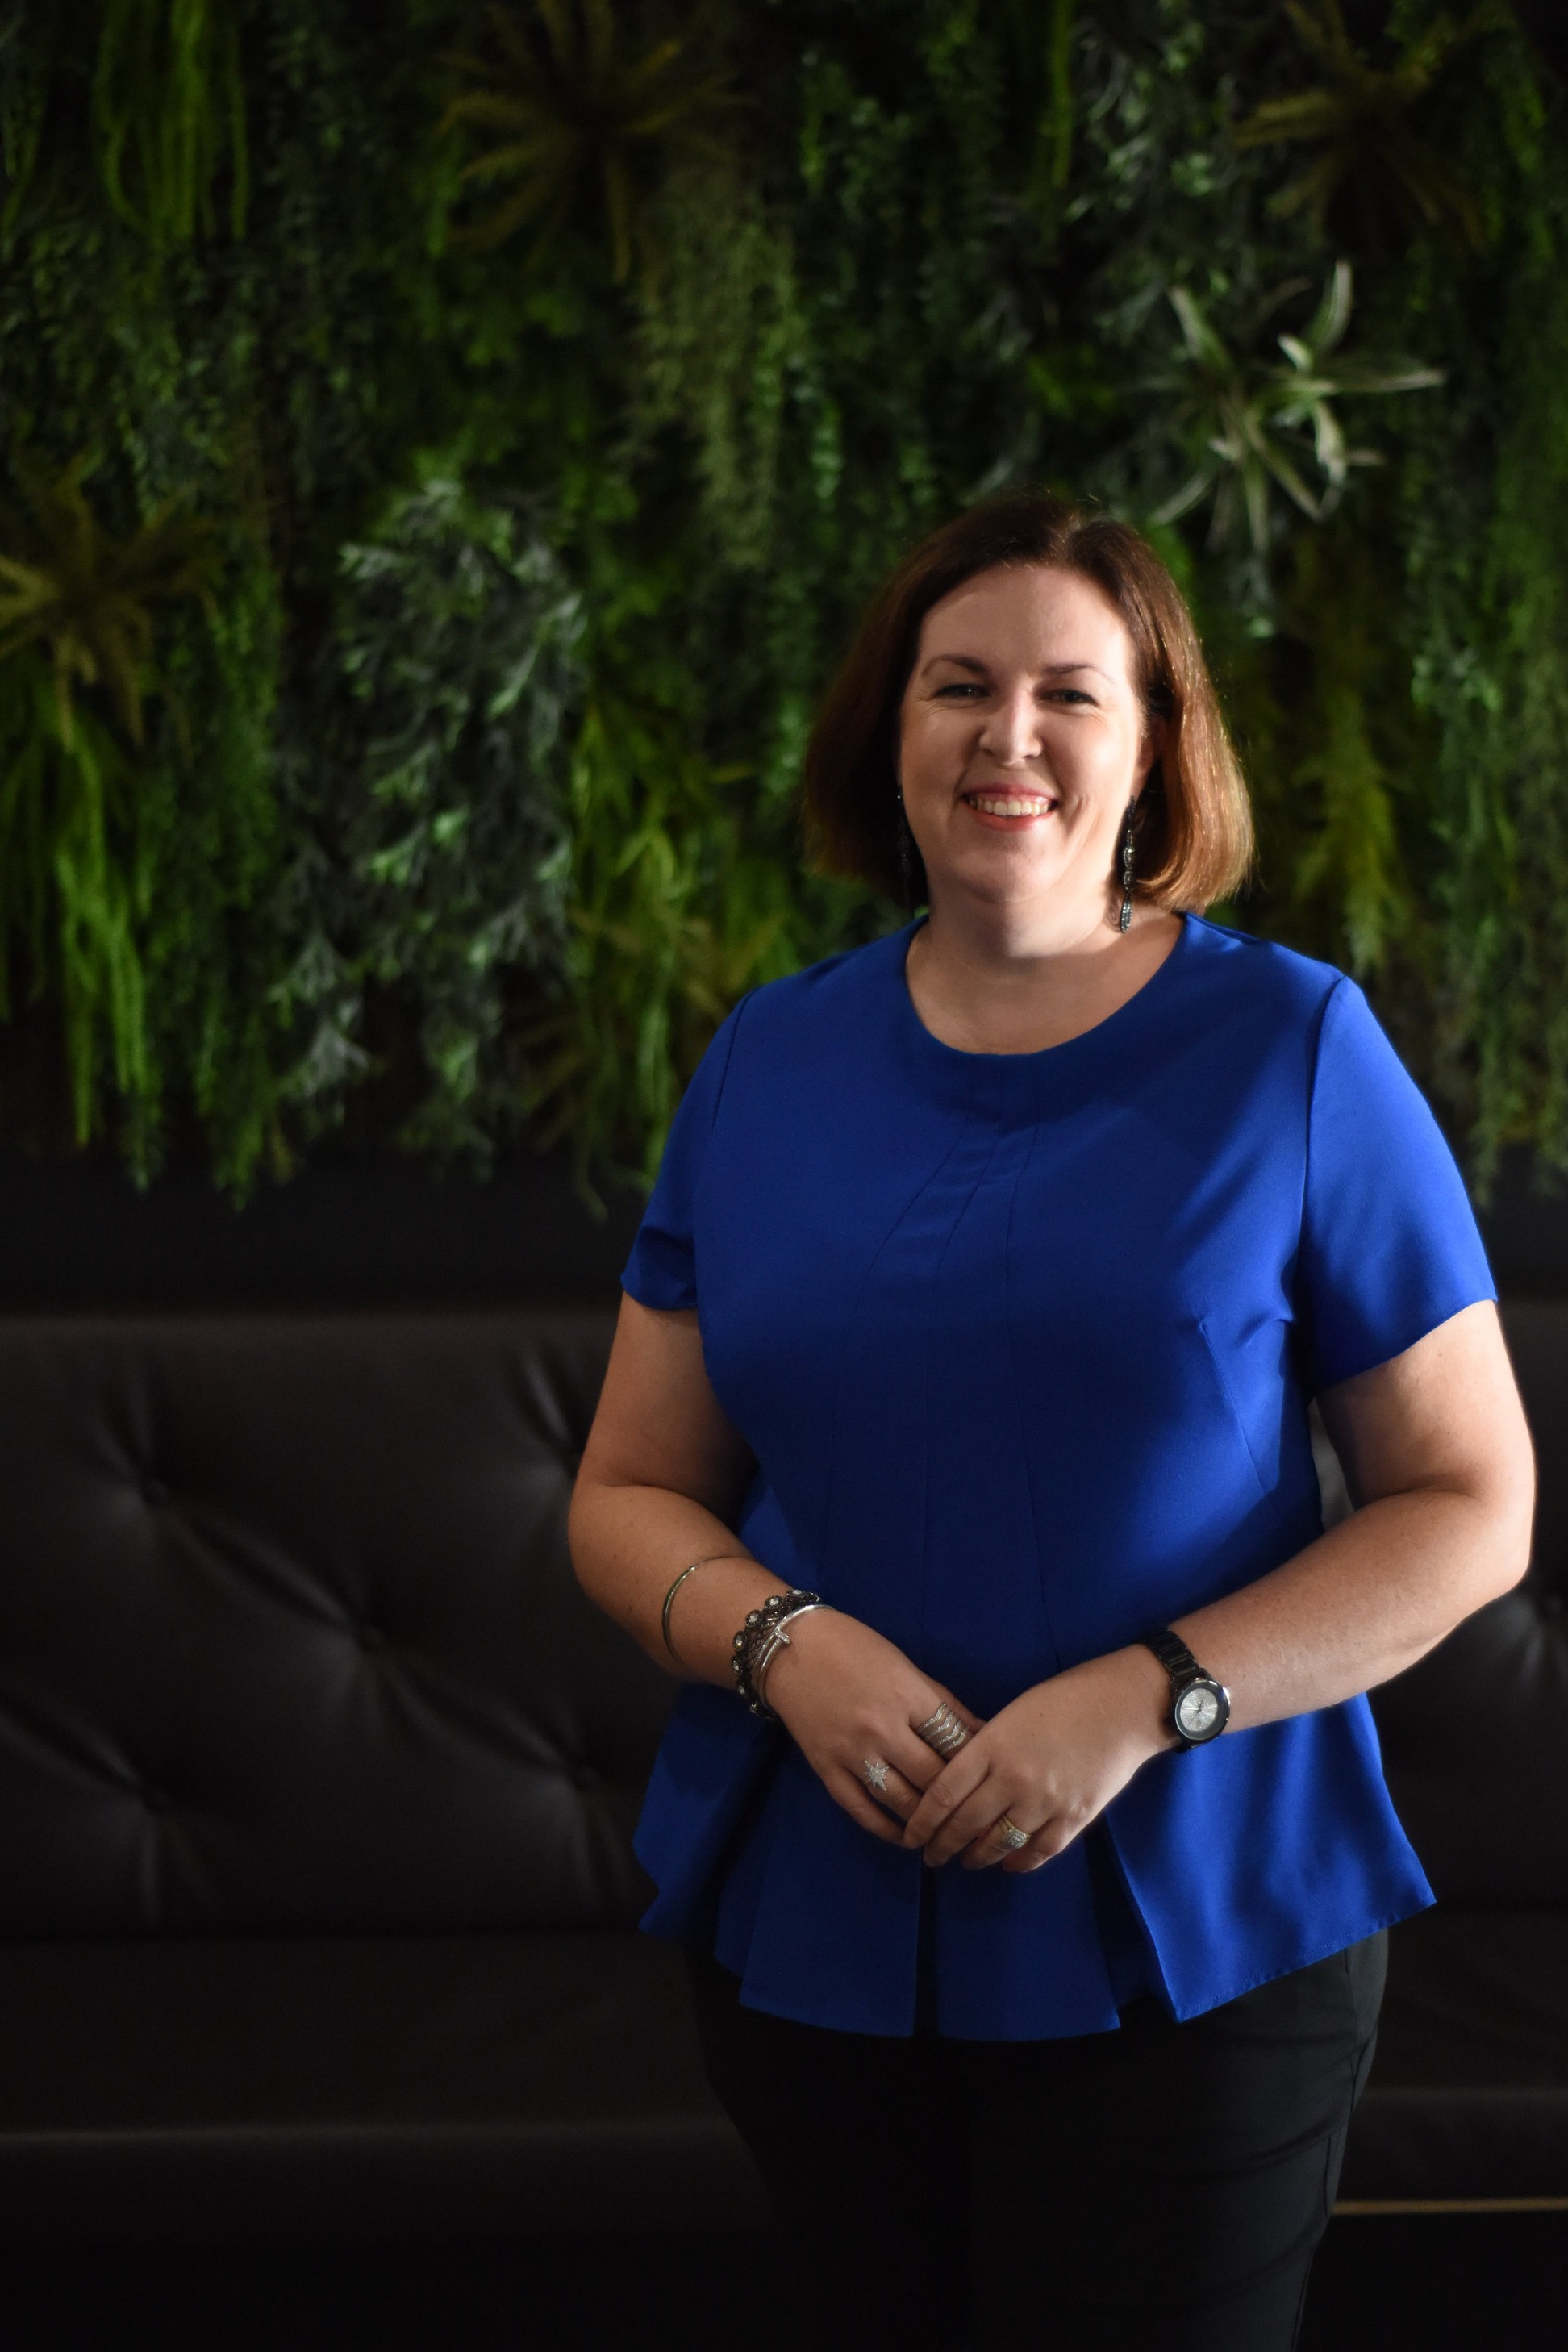 - As a social media native and a marketer with more than 20 years' experience in corporate events, Kirsty's created processes to launch successful events for clients by combining all her passions.